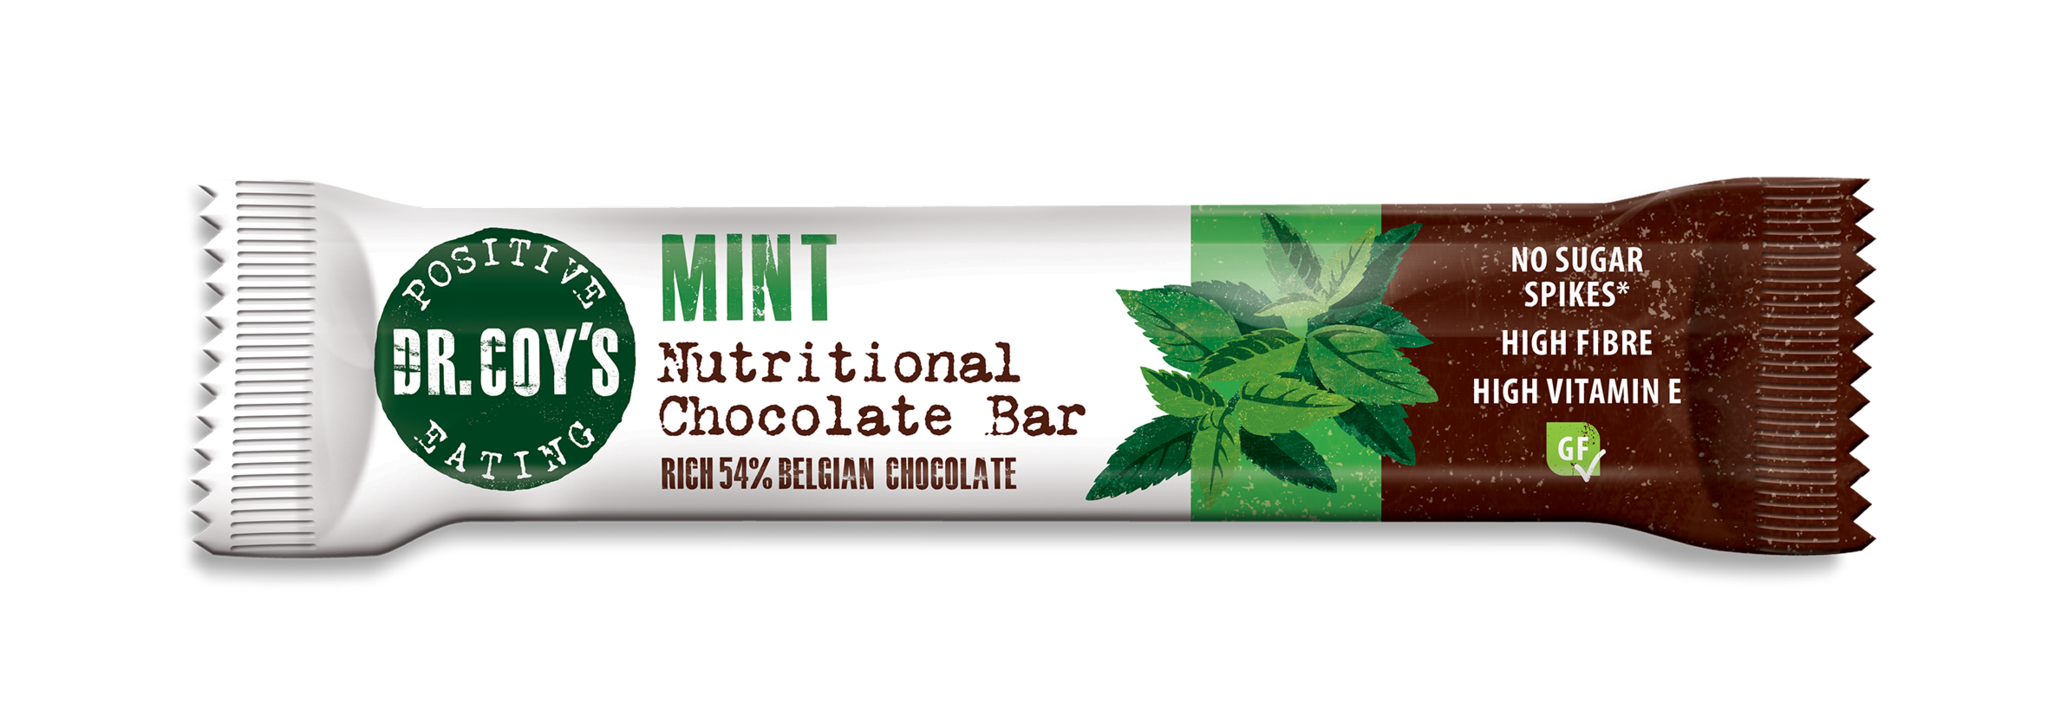 Dr Coy's Nutritional Chocolate Bar Mint 35g - SoulBia